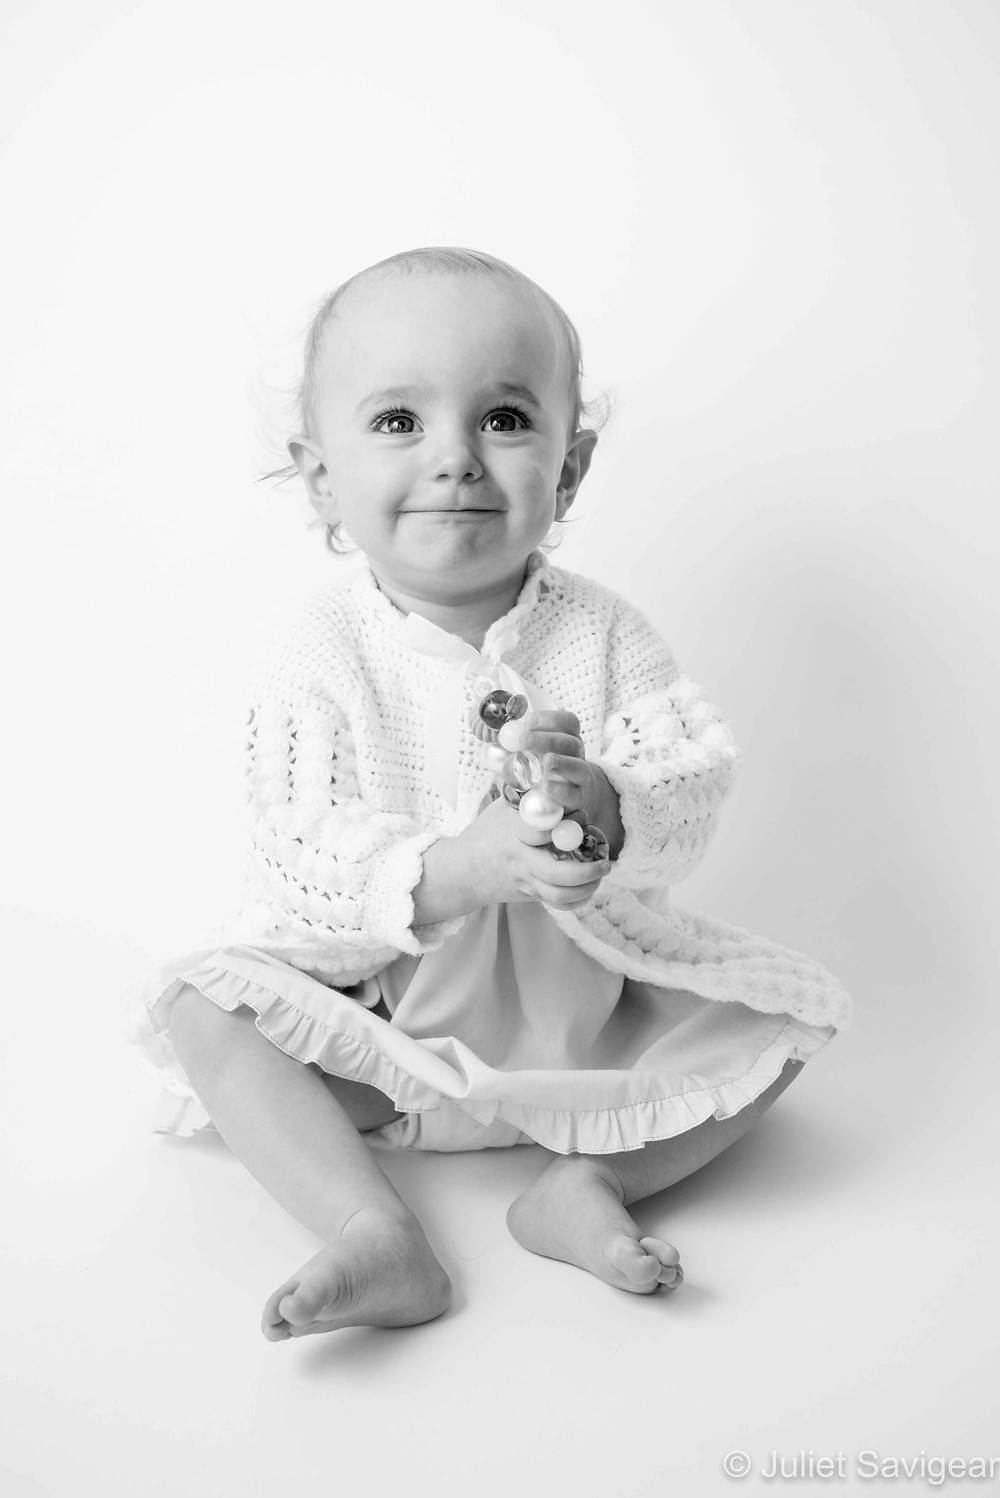 Beads - Baby Photography, Clapham